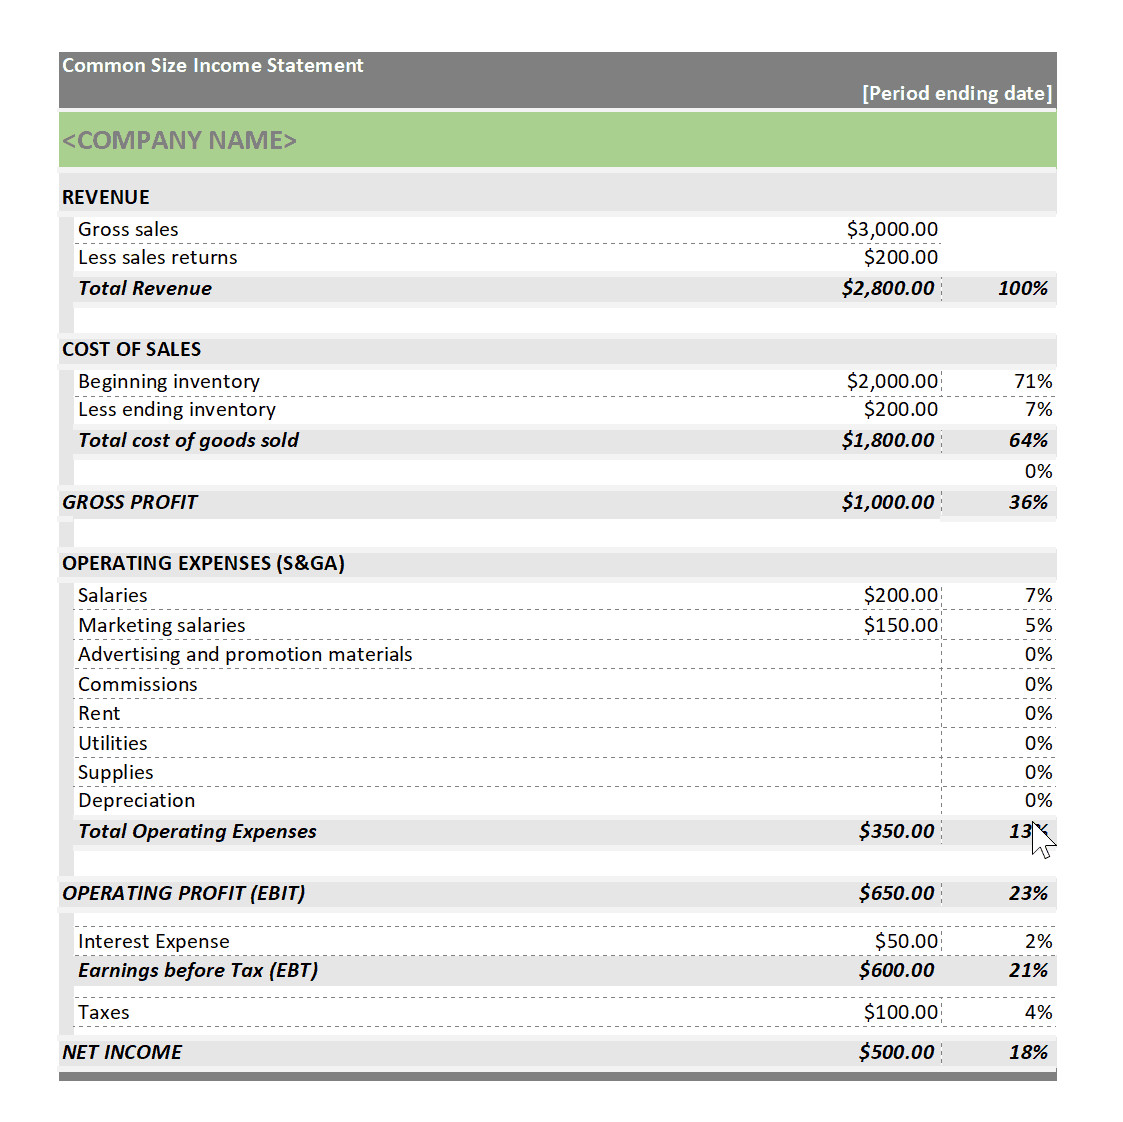 Common Size Income Statement Template 41 Free In E Statement Templates & Examples Template Lab